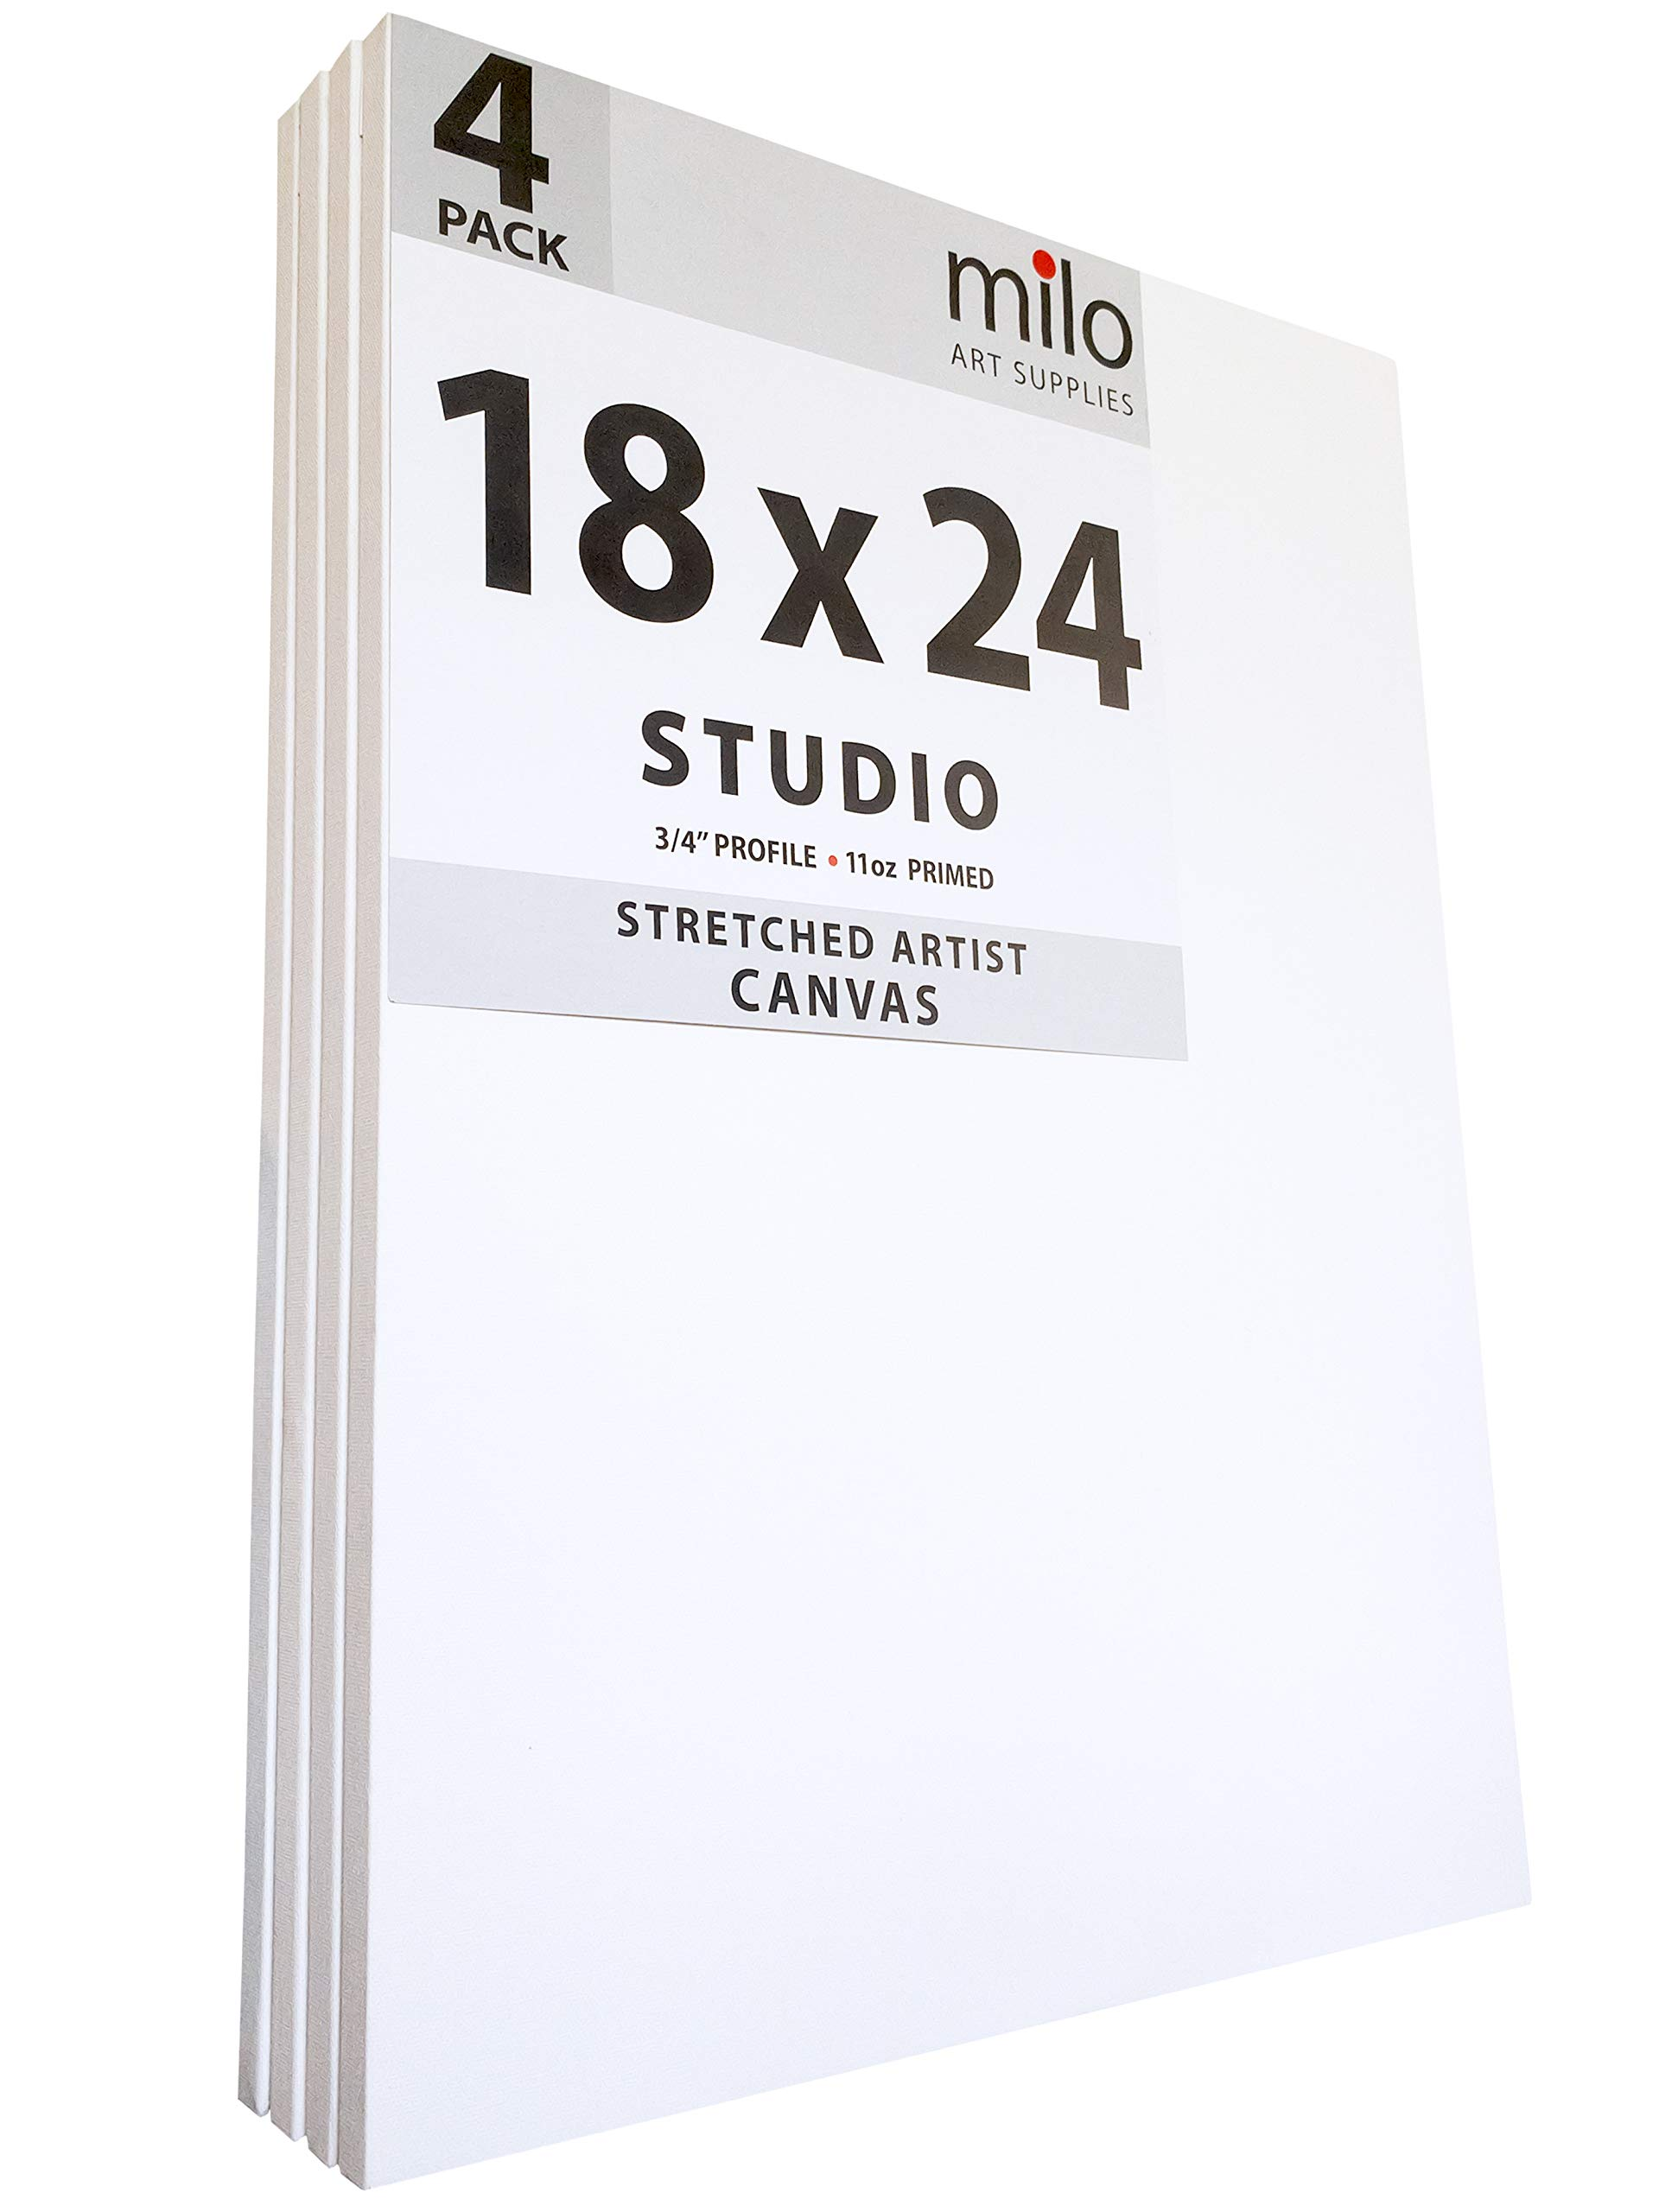 MILO PRO | 18 x 24'' Stretched Canvas Pack of 4 | 3/4'' inch Studio Profile | 11 oz Primed Large Professional Artist Painting Canvases | Ready to Paint White Blank Art Canvas Bulk Set by milo